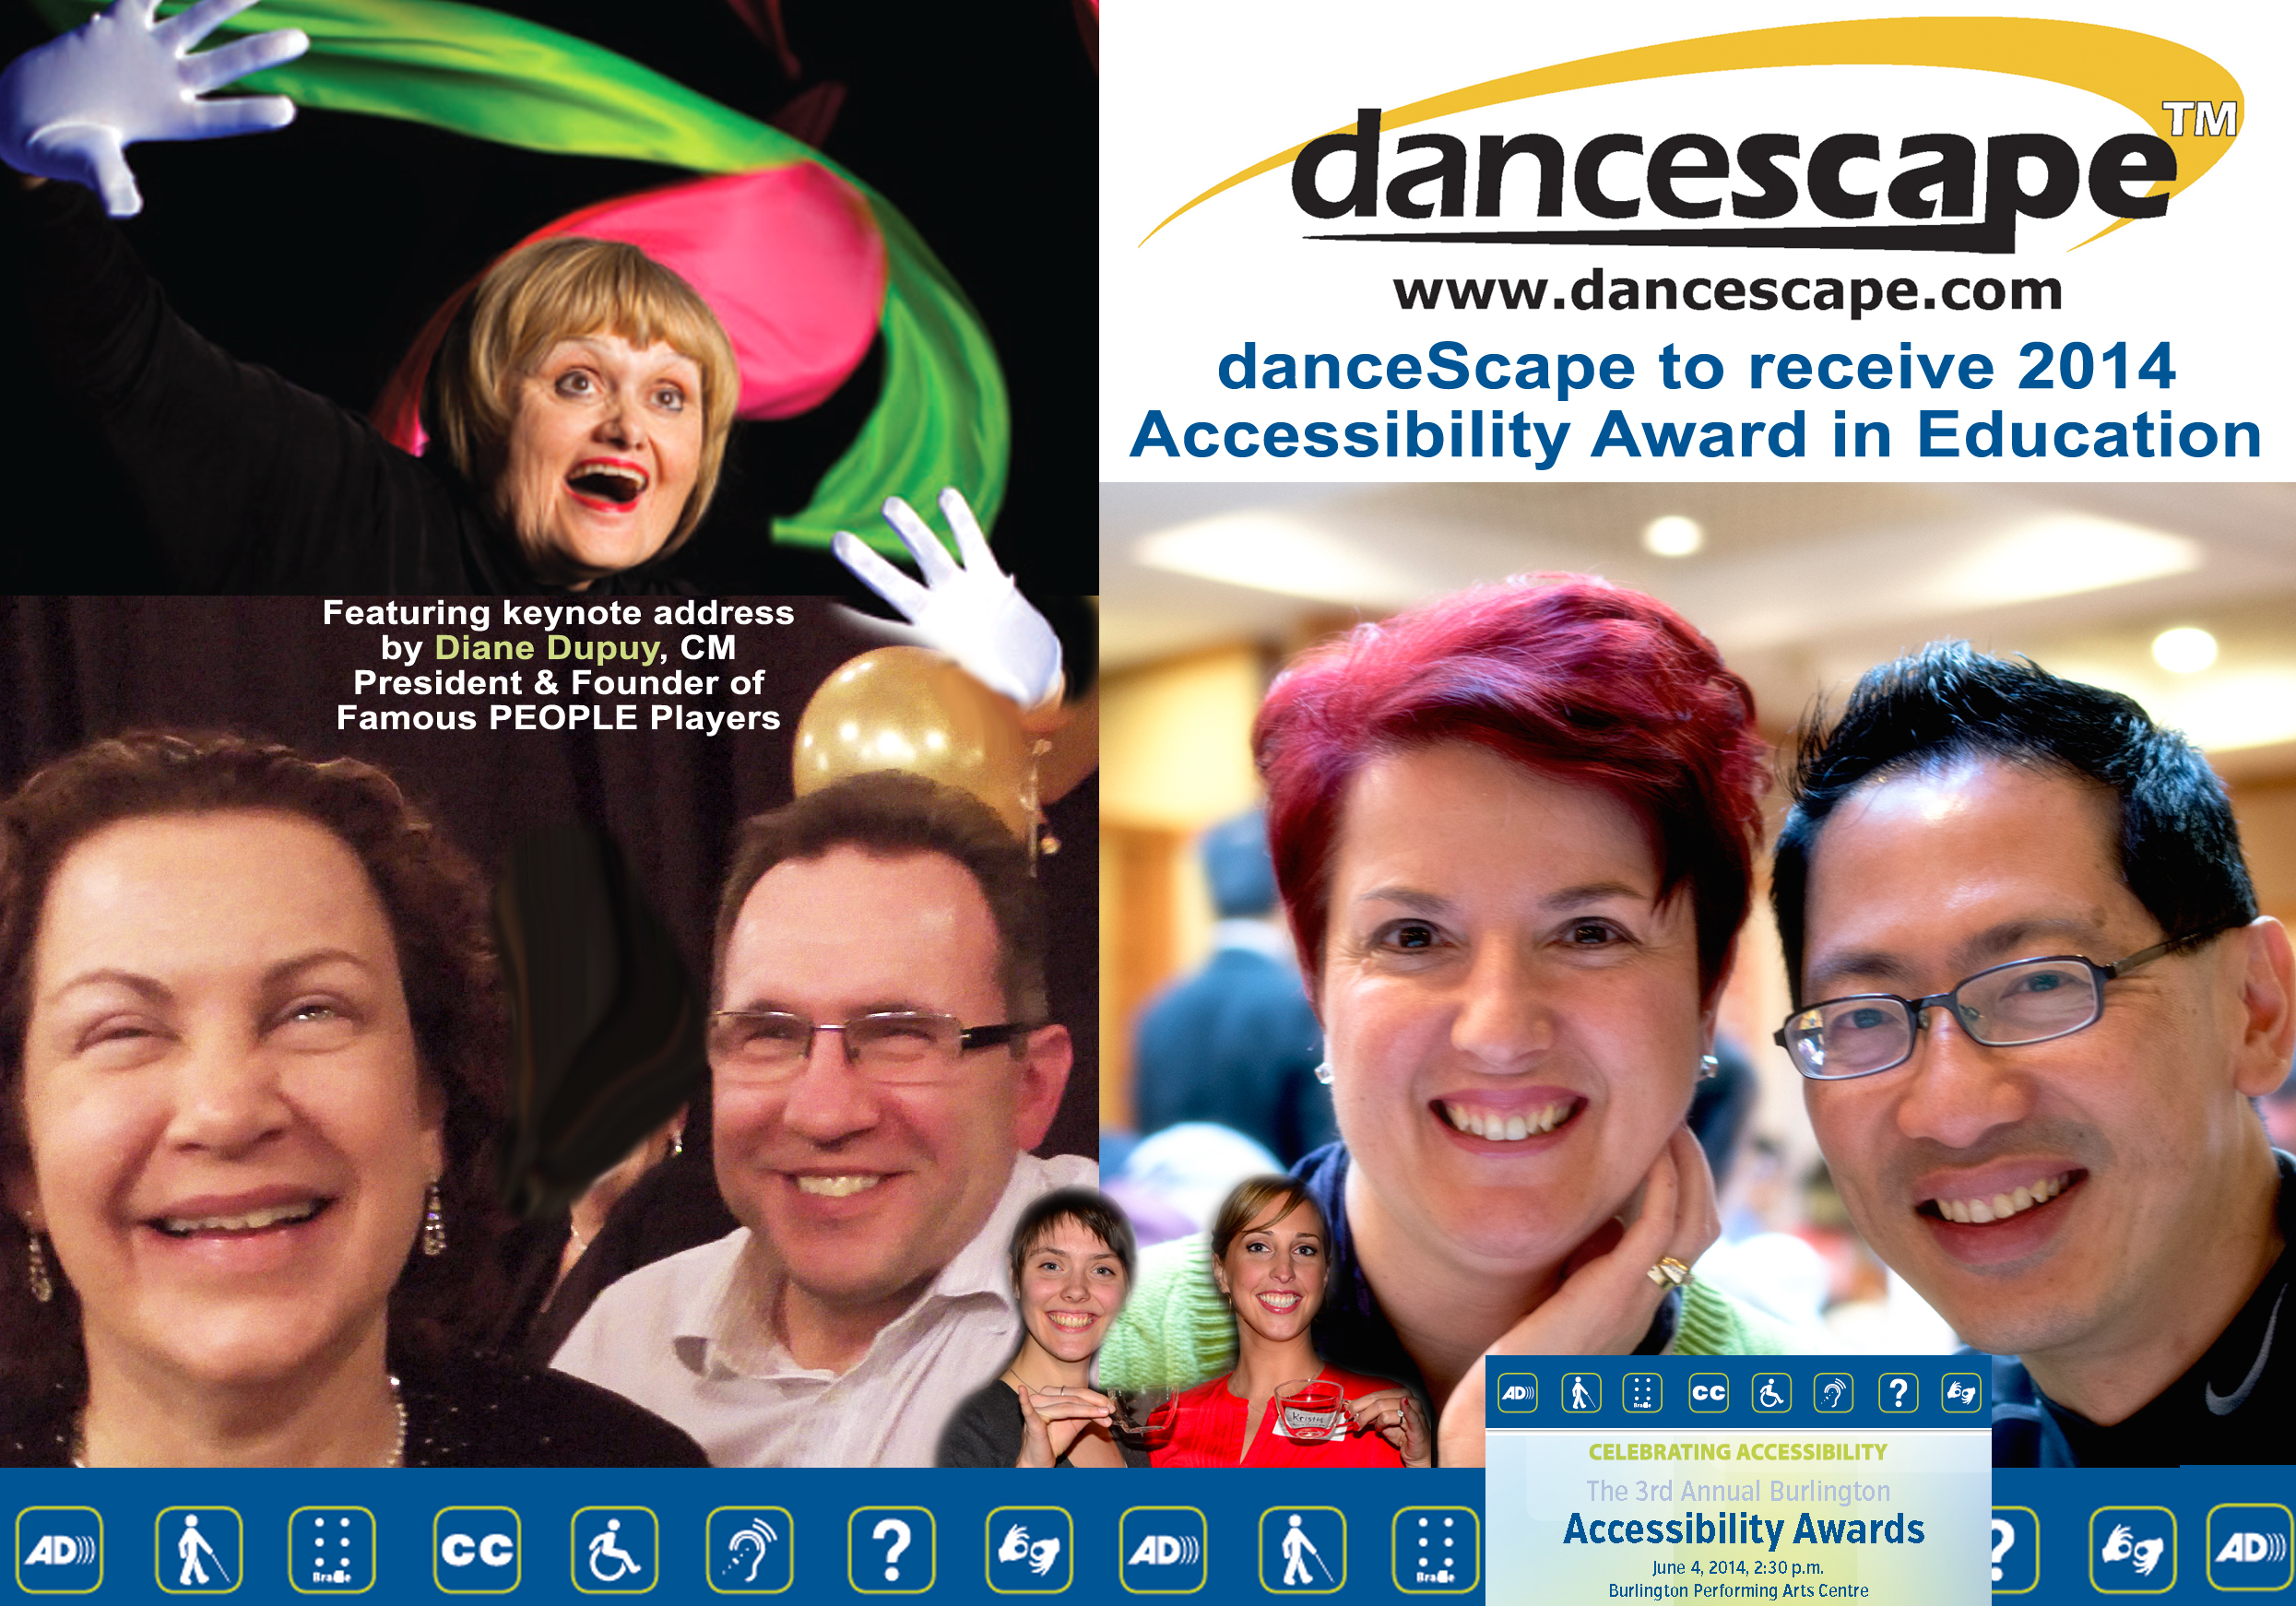 Join danceScape at the Burlington Accessibility Awards